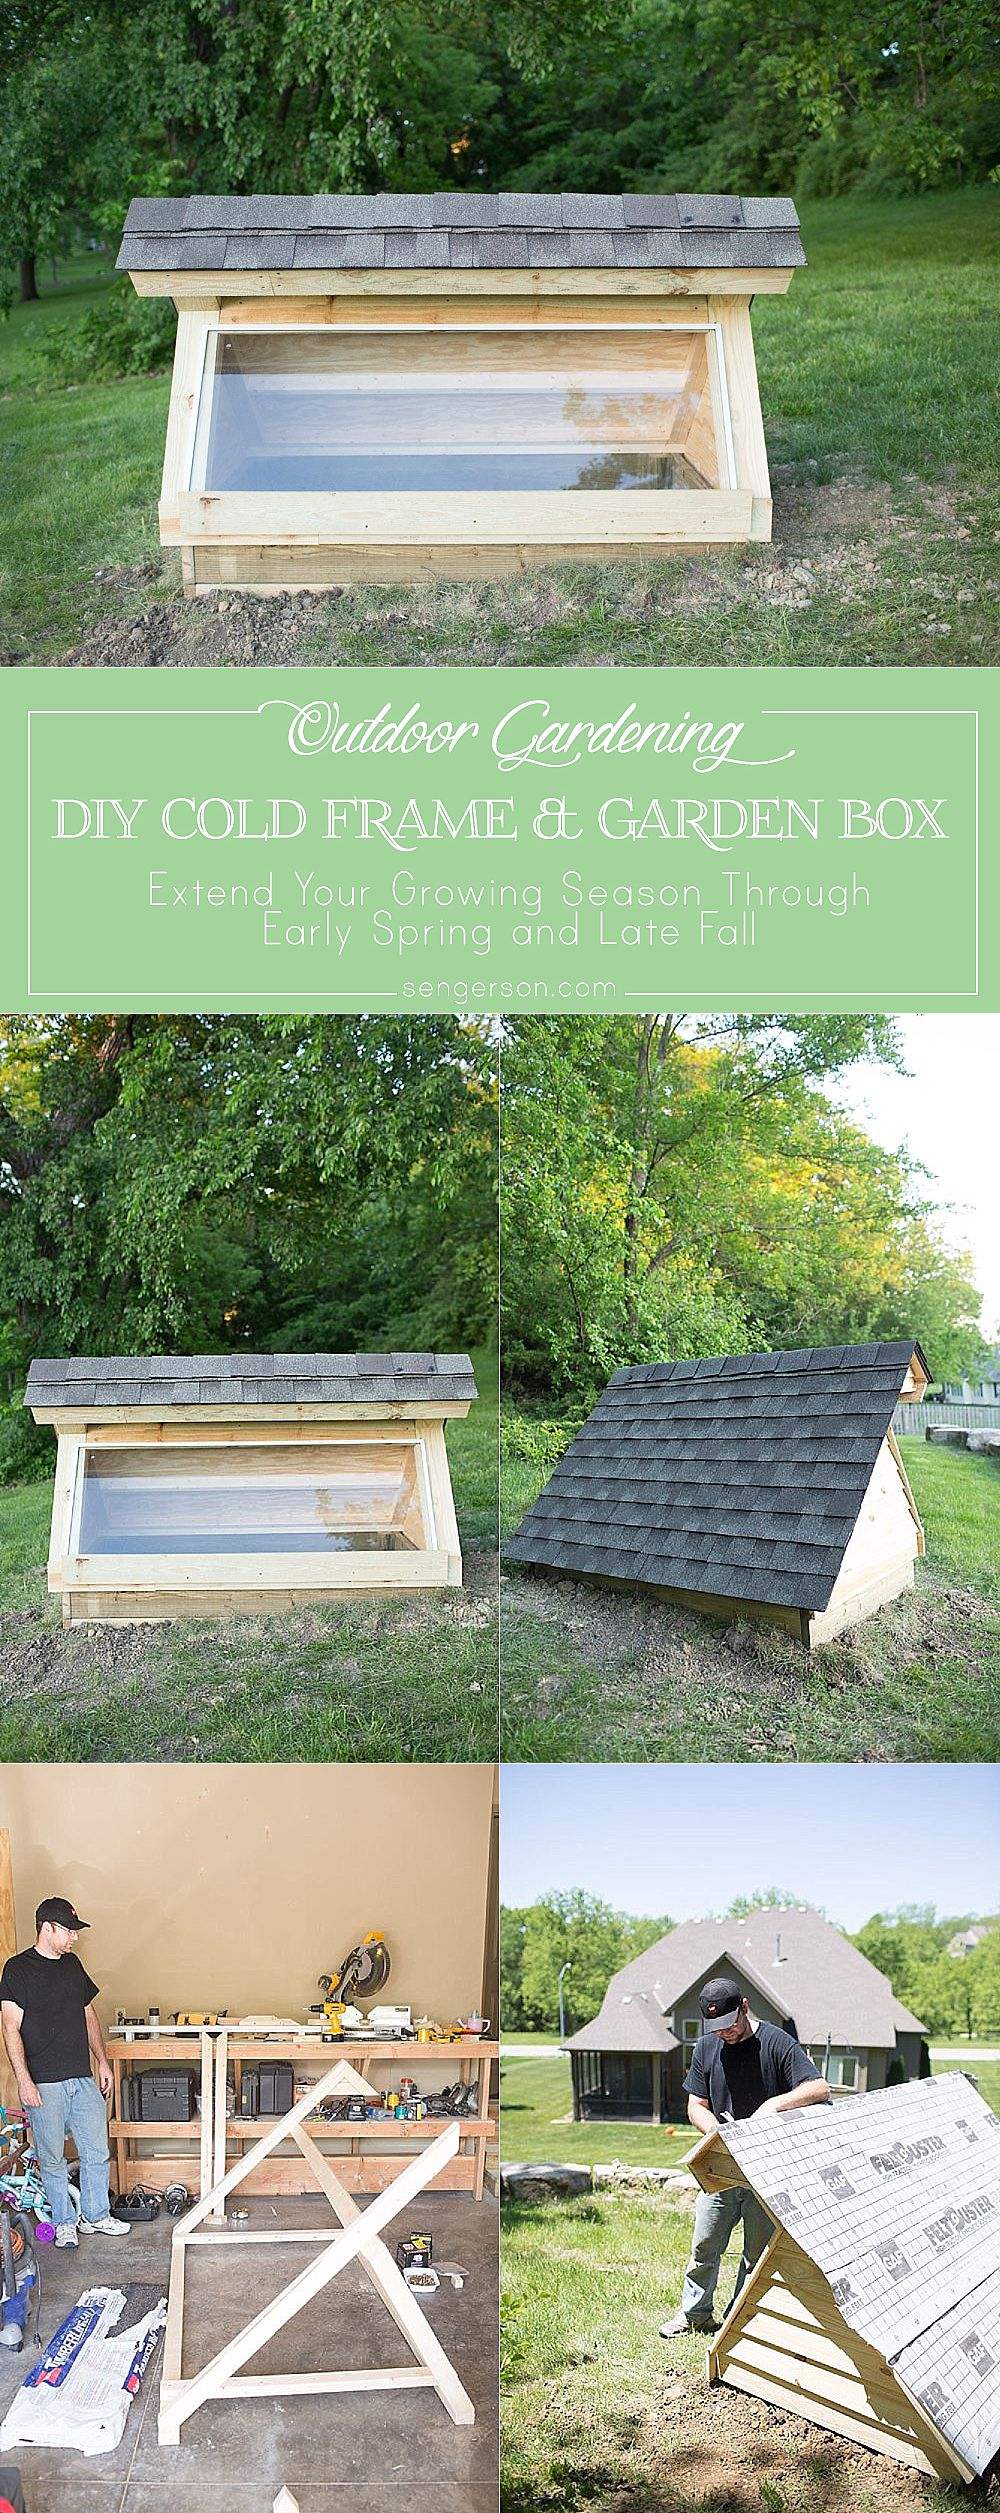 This is a DIY cold frame garden box and greenhouse all in one! It will allow you to extend your growing season from early spring to late fall and winter! It has a roof to help protect it from the elements as well as a guarding the cold frame from rainwater seepage! Awesome idea!